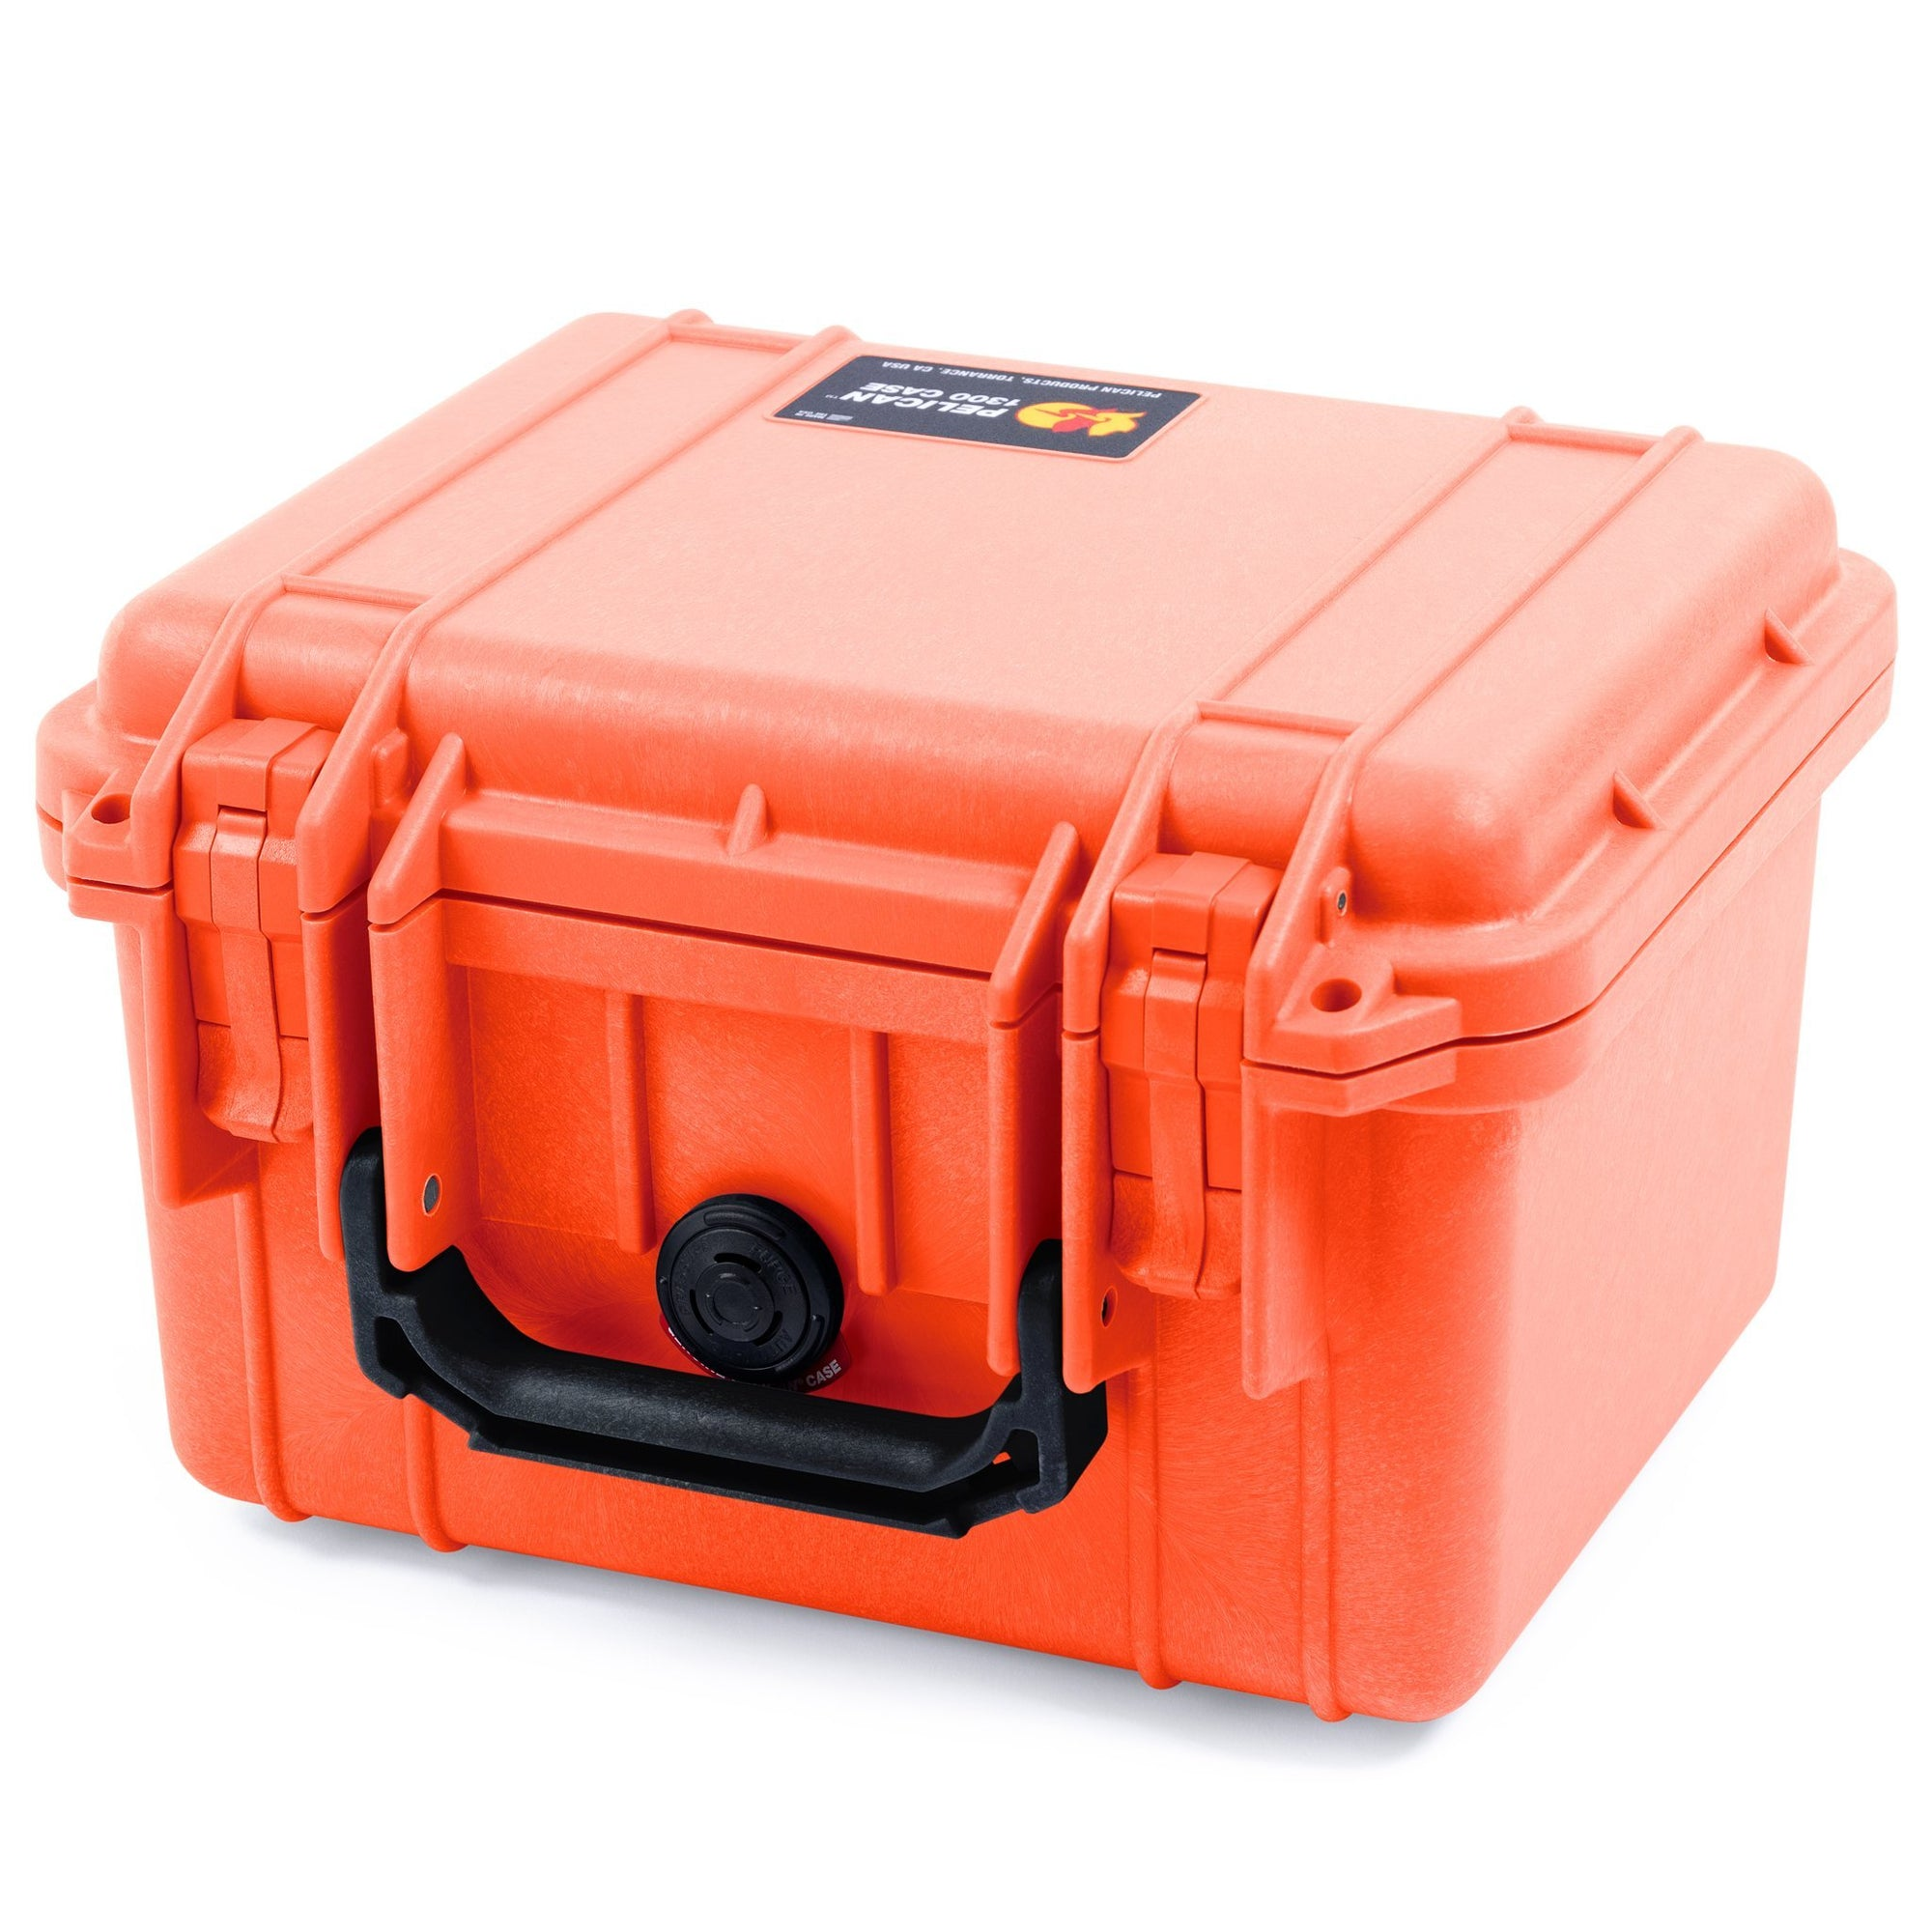 Pelican 1300 Case, Orange with Black Handle - Pelican Color Case